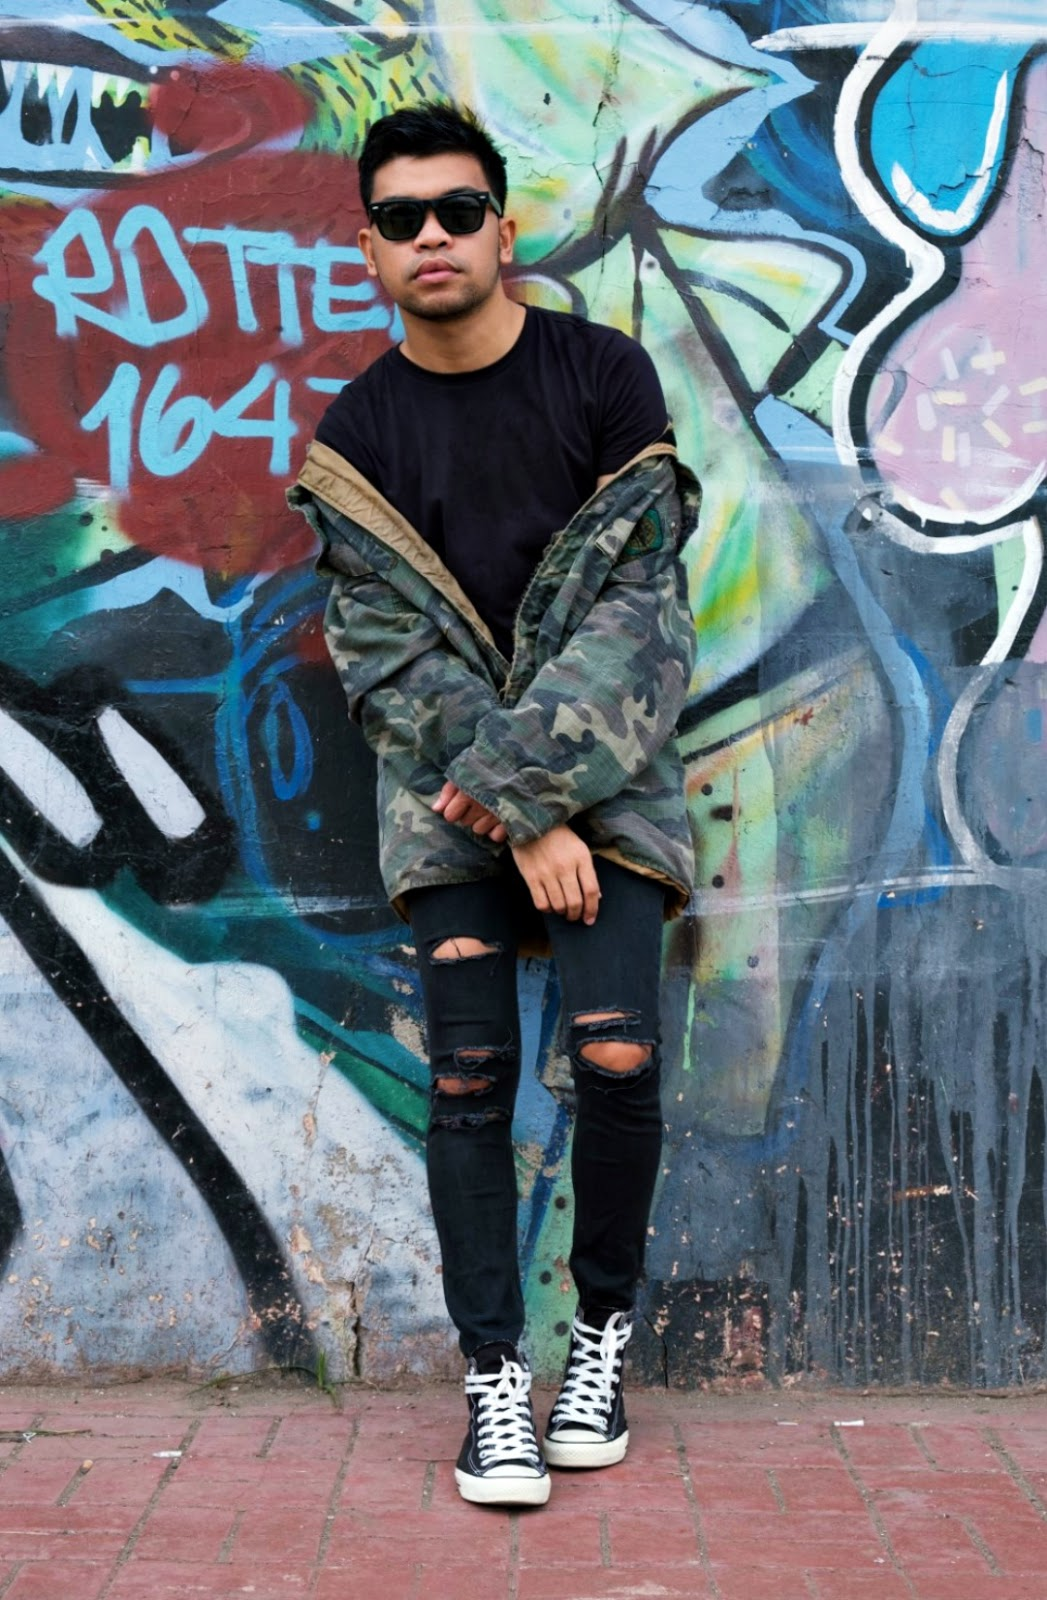 cebu-male-fashion-blogger-almostablogger-wear-camo6.jpg